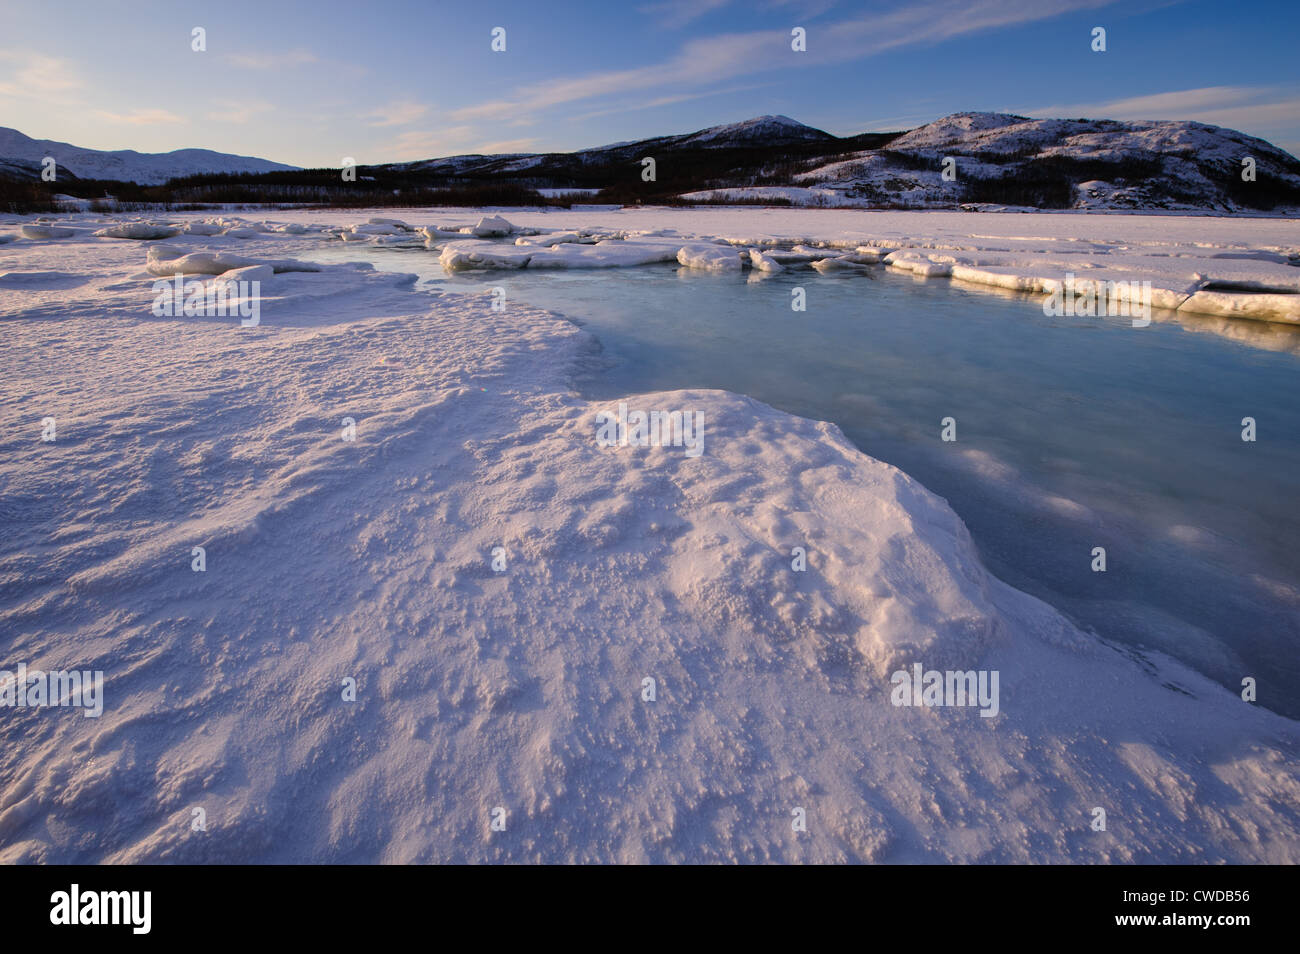 Winter landscape in Northern Norway, ice and snow on a frozen fjord - Stock Image